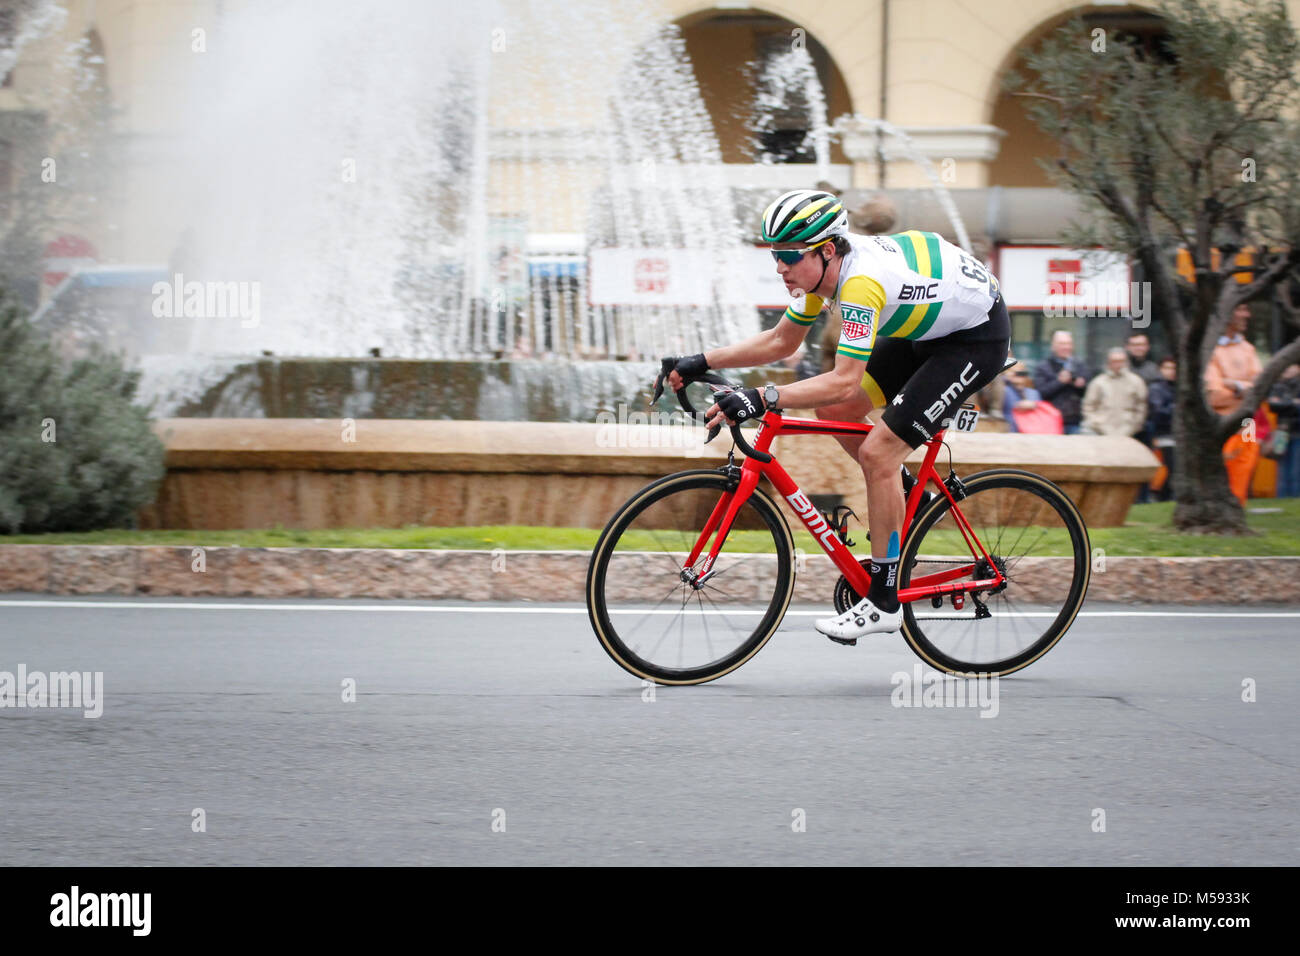 Professional Sports Ride Stock Photos & Professional ...